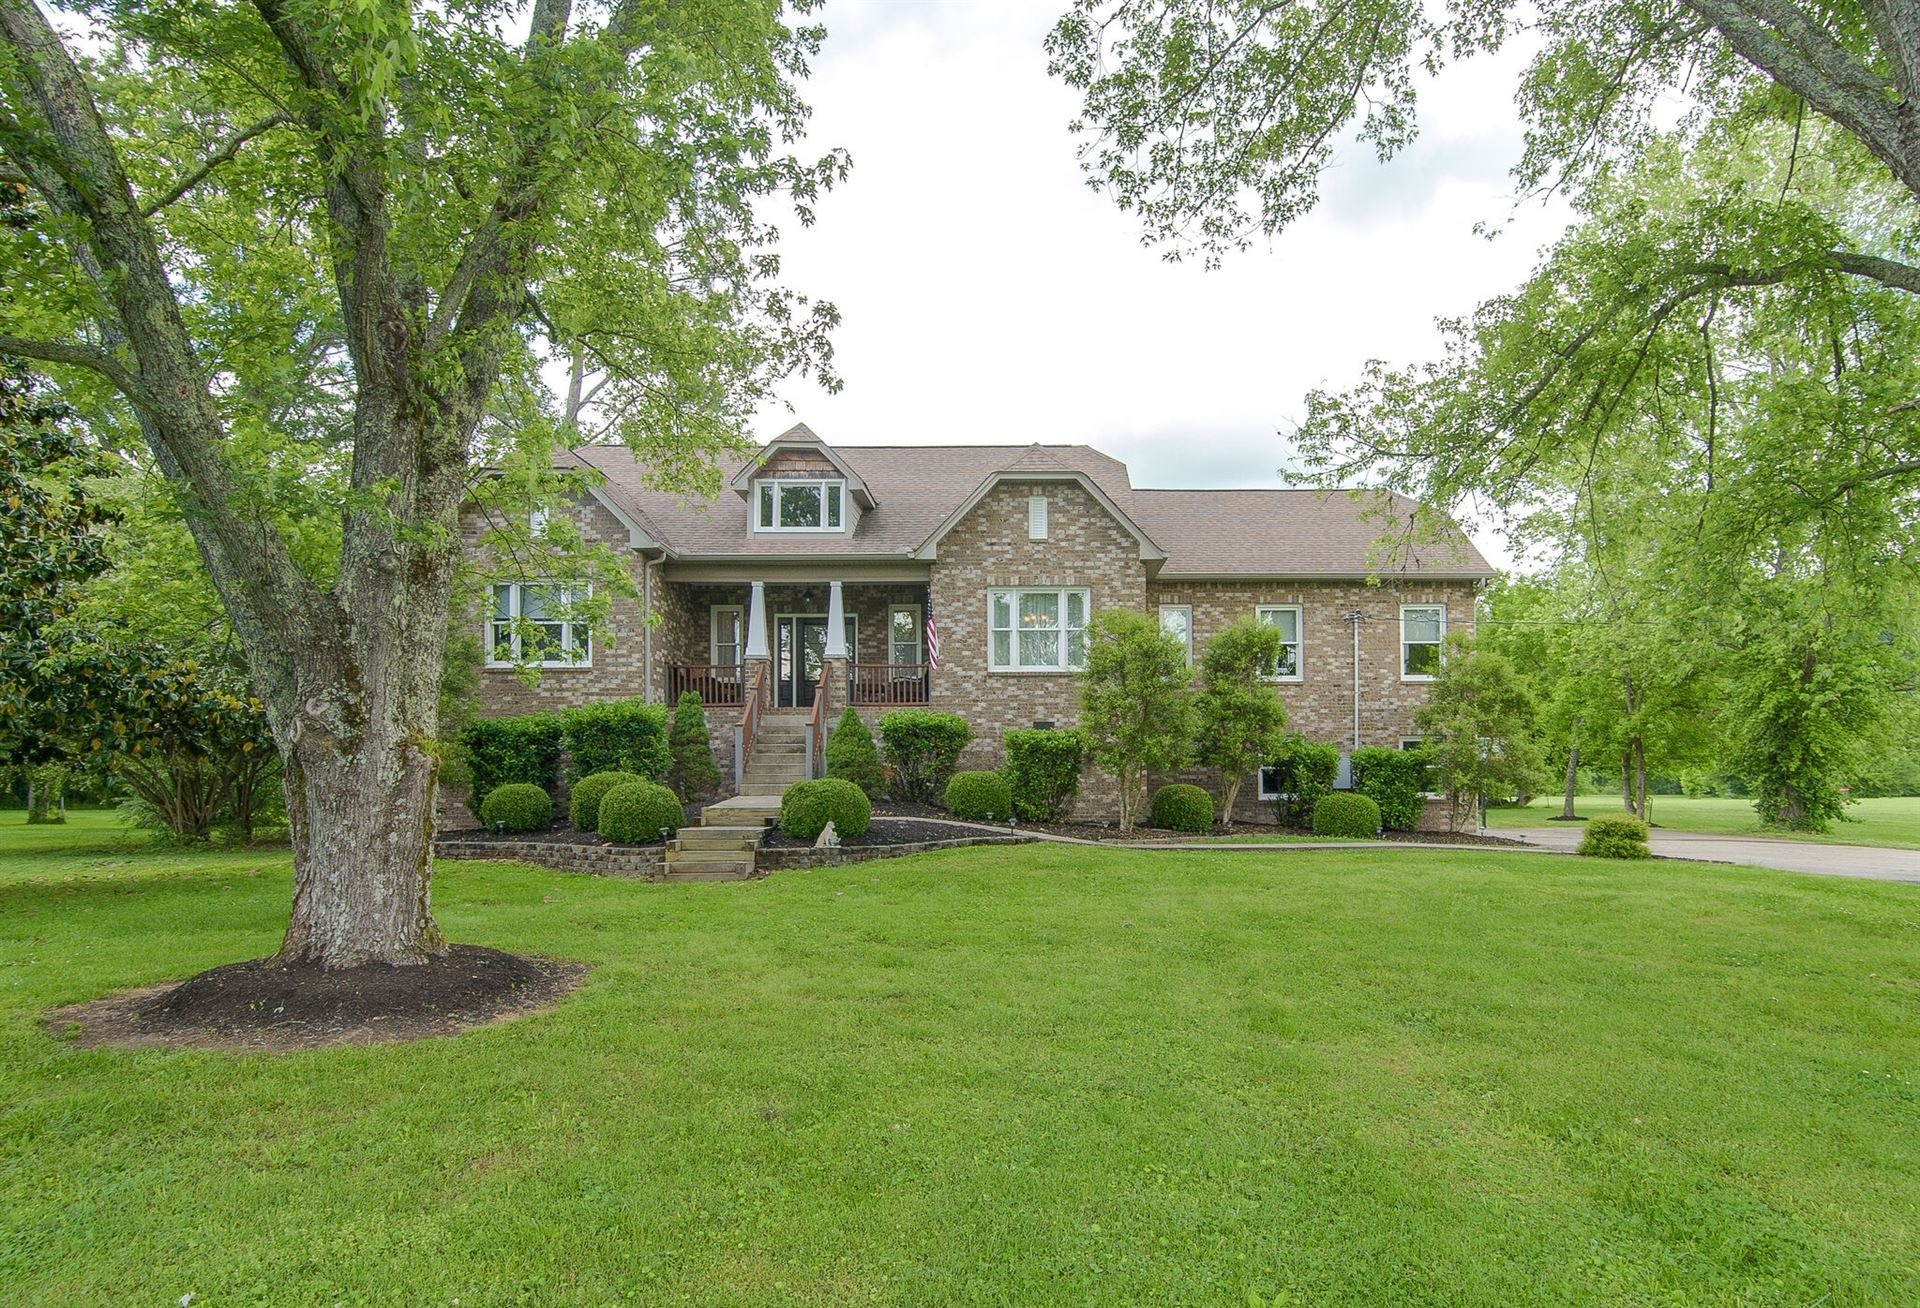 Photo of 5125 Old Harding Rd, Franklin, TN 37064 (MLS # 2152935)